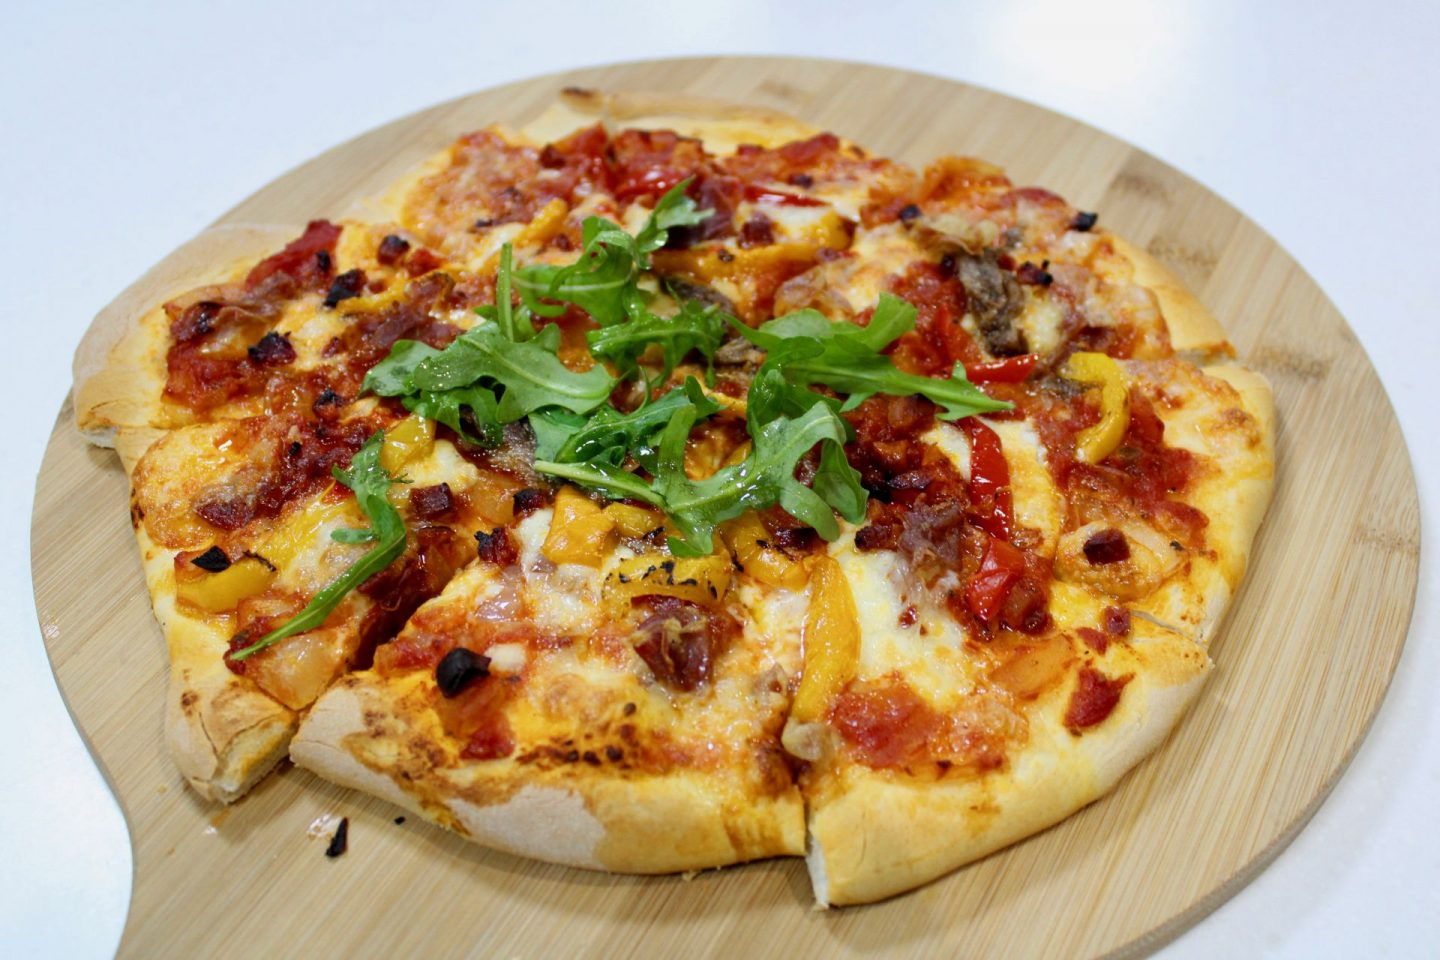 Cooked pizza on a wooden board. The edges are crispy, the cheese is perfectly melted and the pizza is topped with fresh rocket.